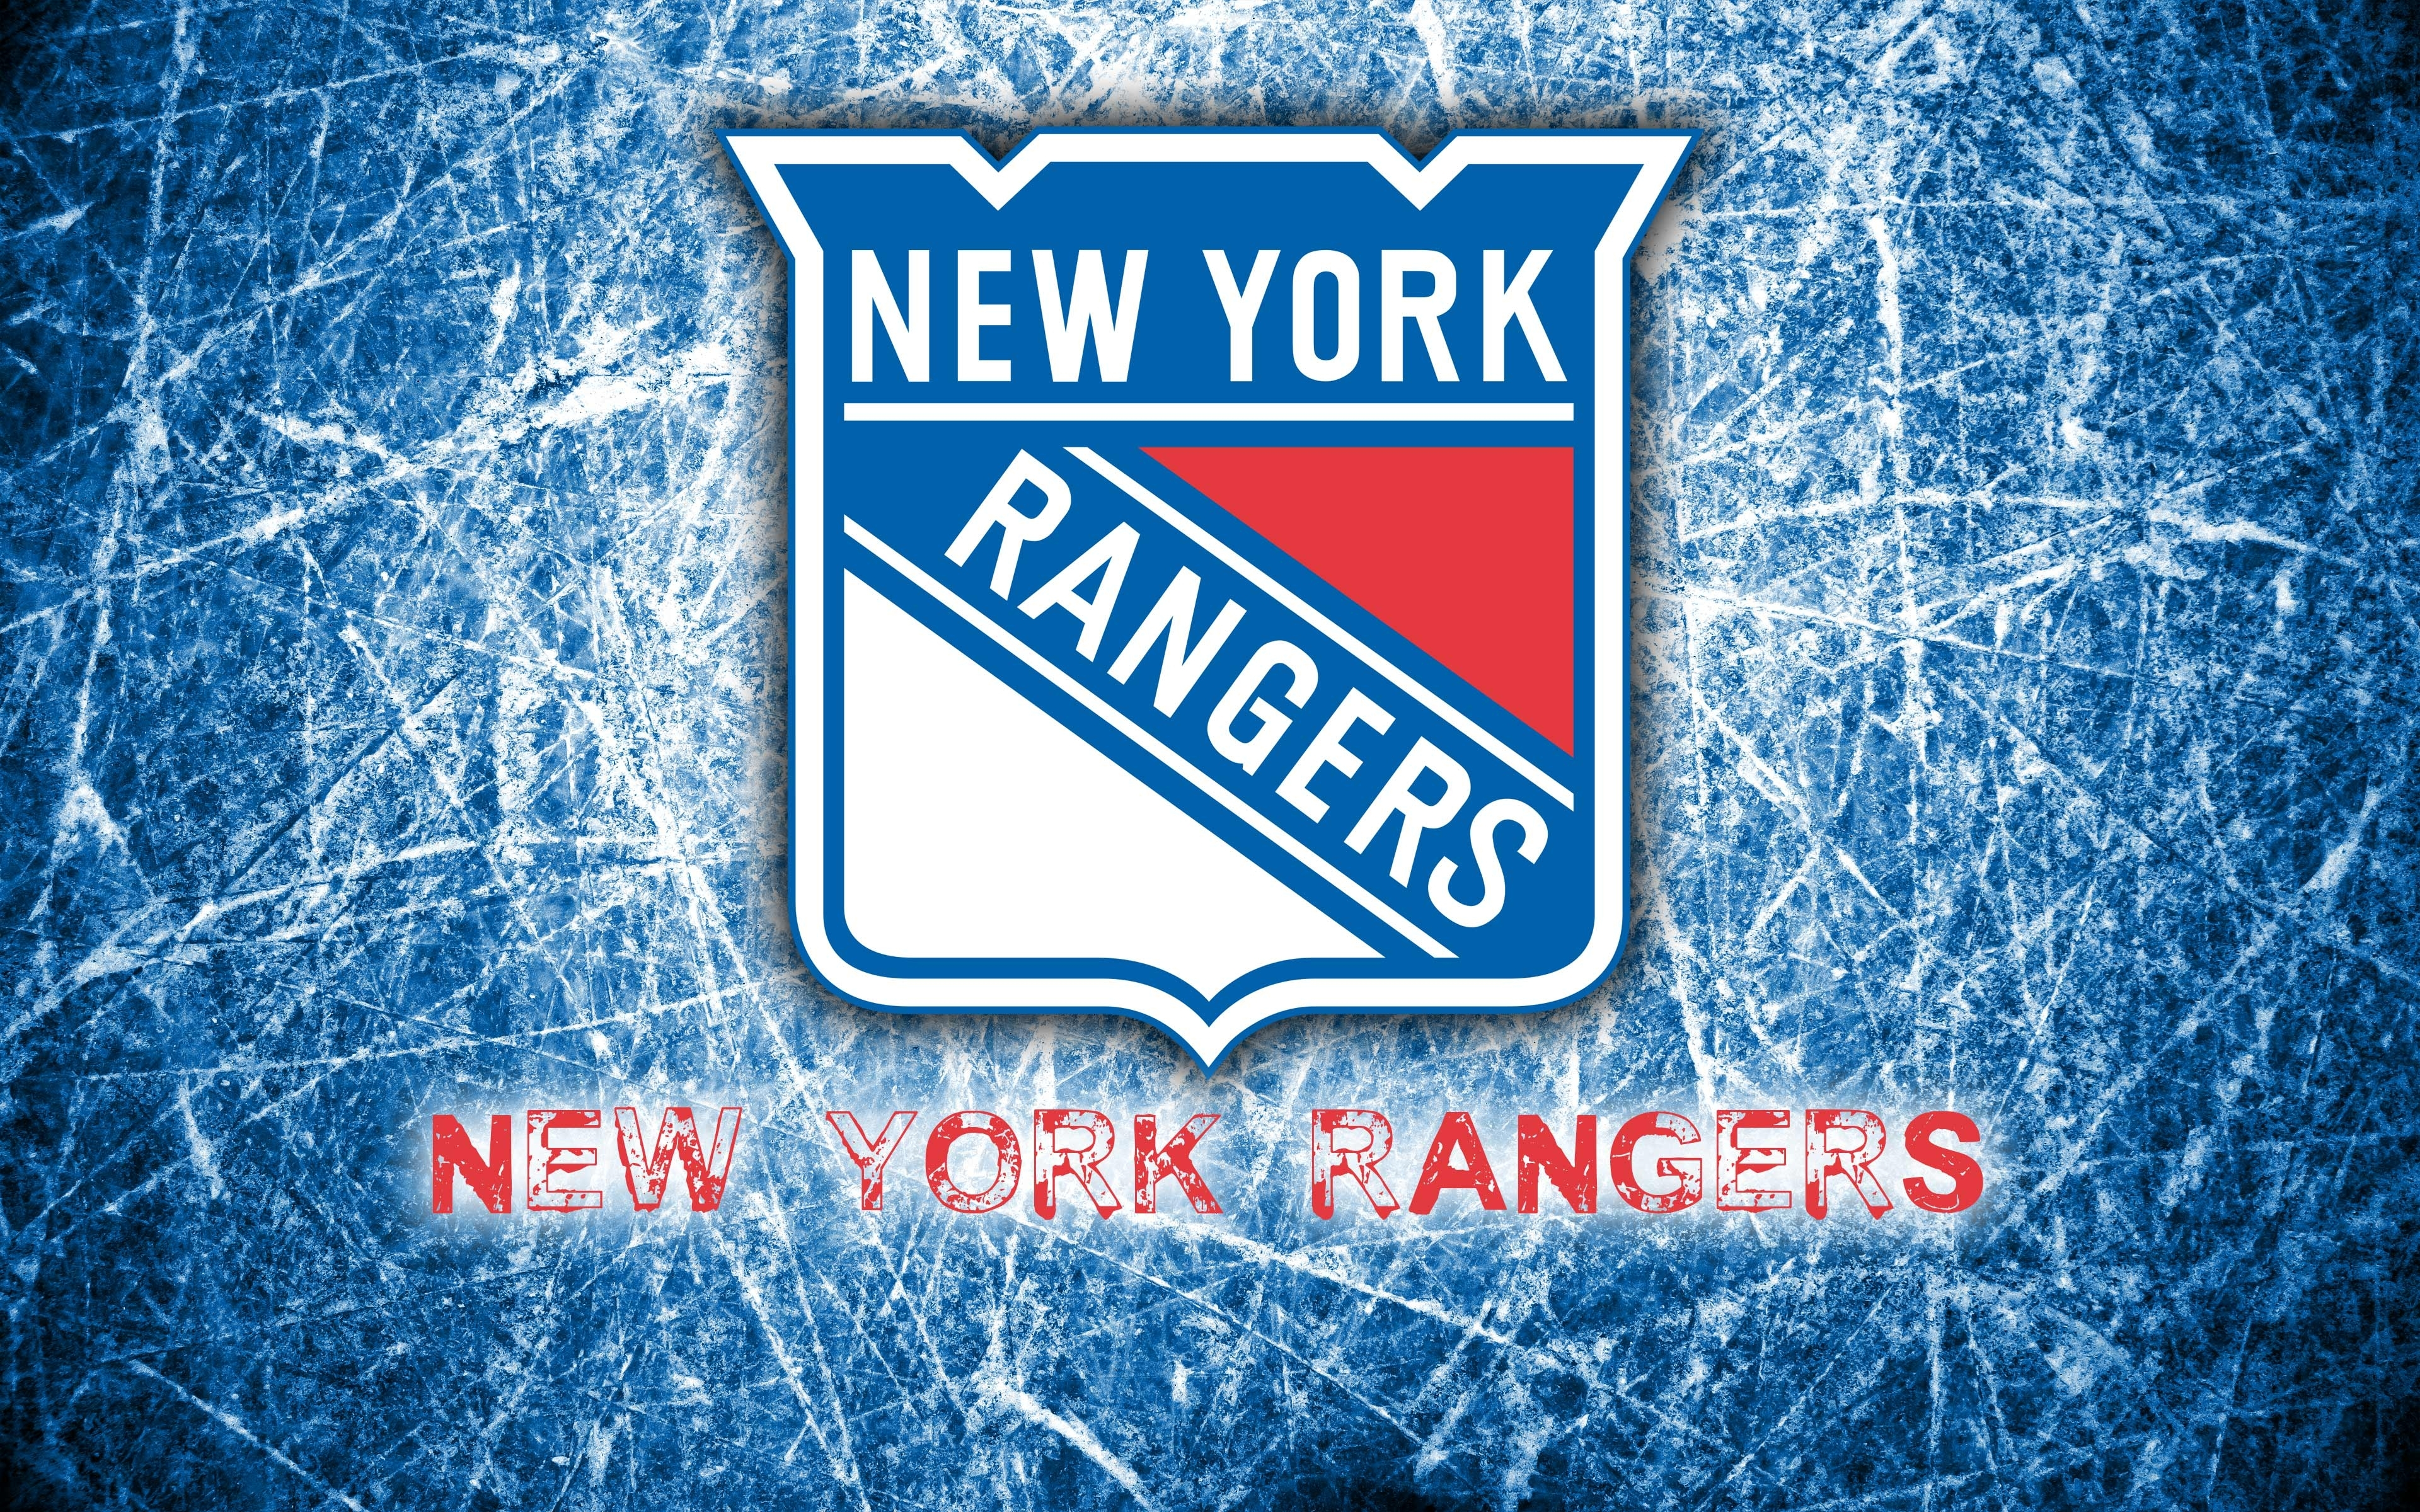 new york rangers wallpaper collection for free download | hd